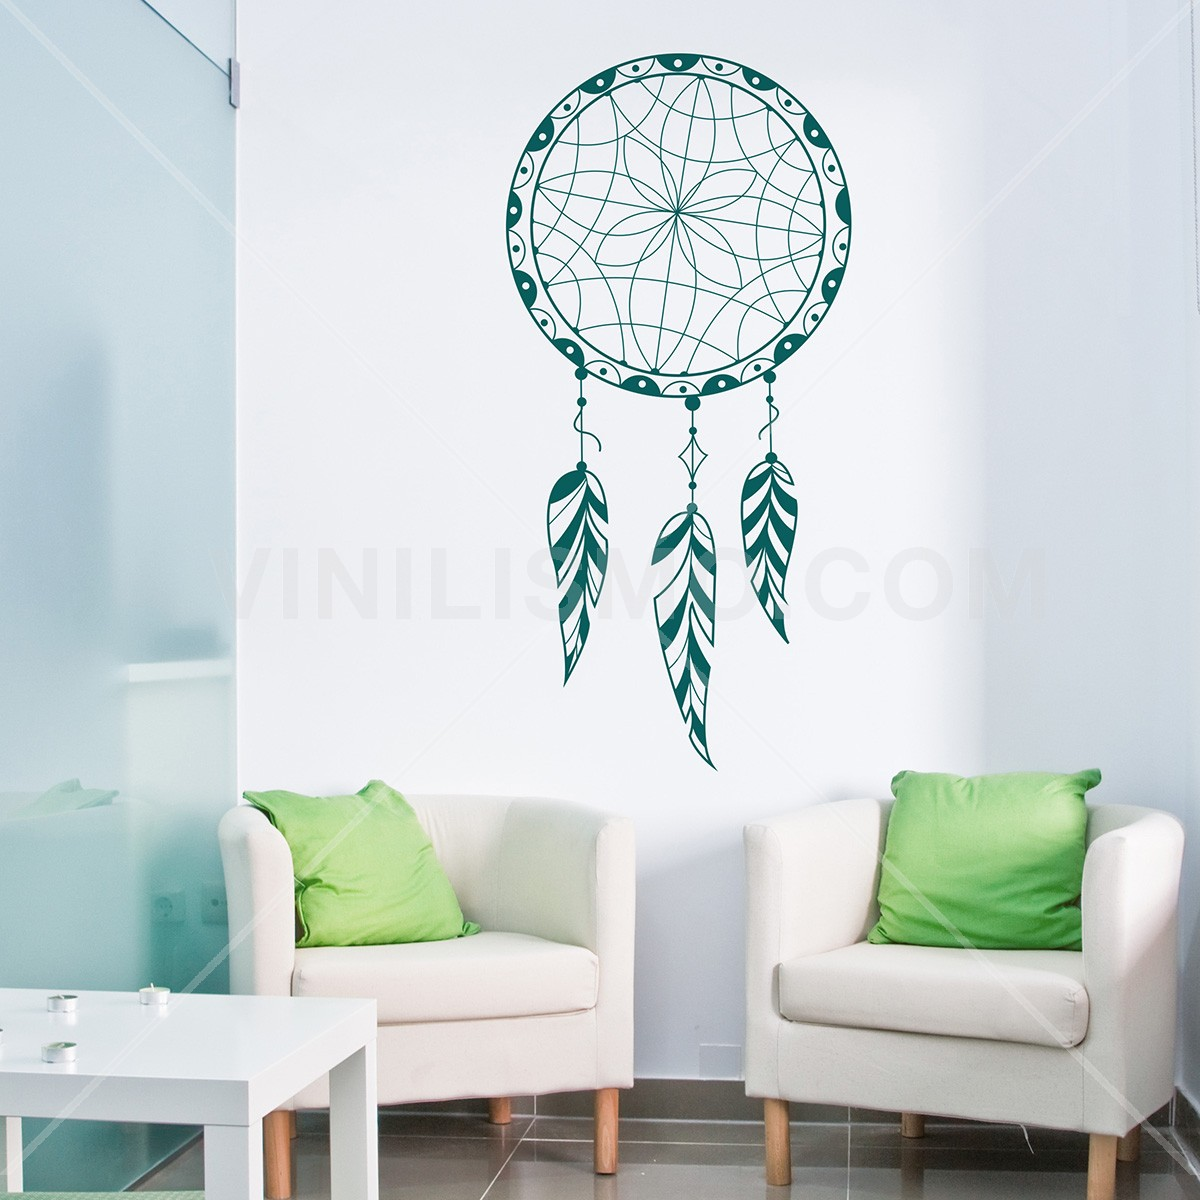 Vinilo decorativo dreamcatcher - Vinilos decorativos zen ...